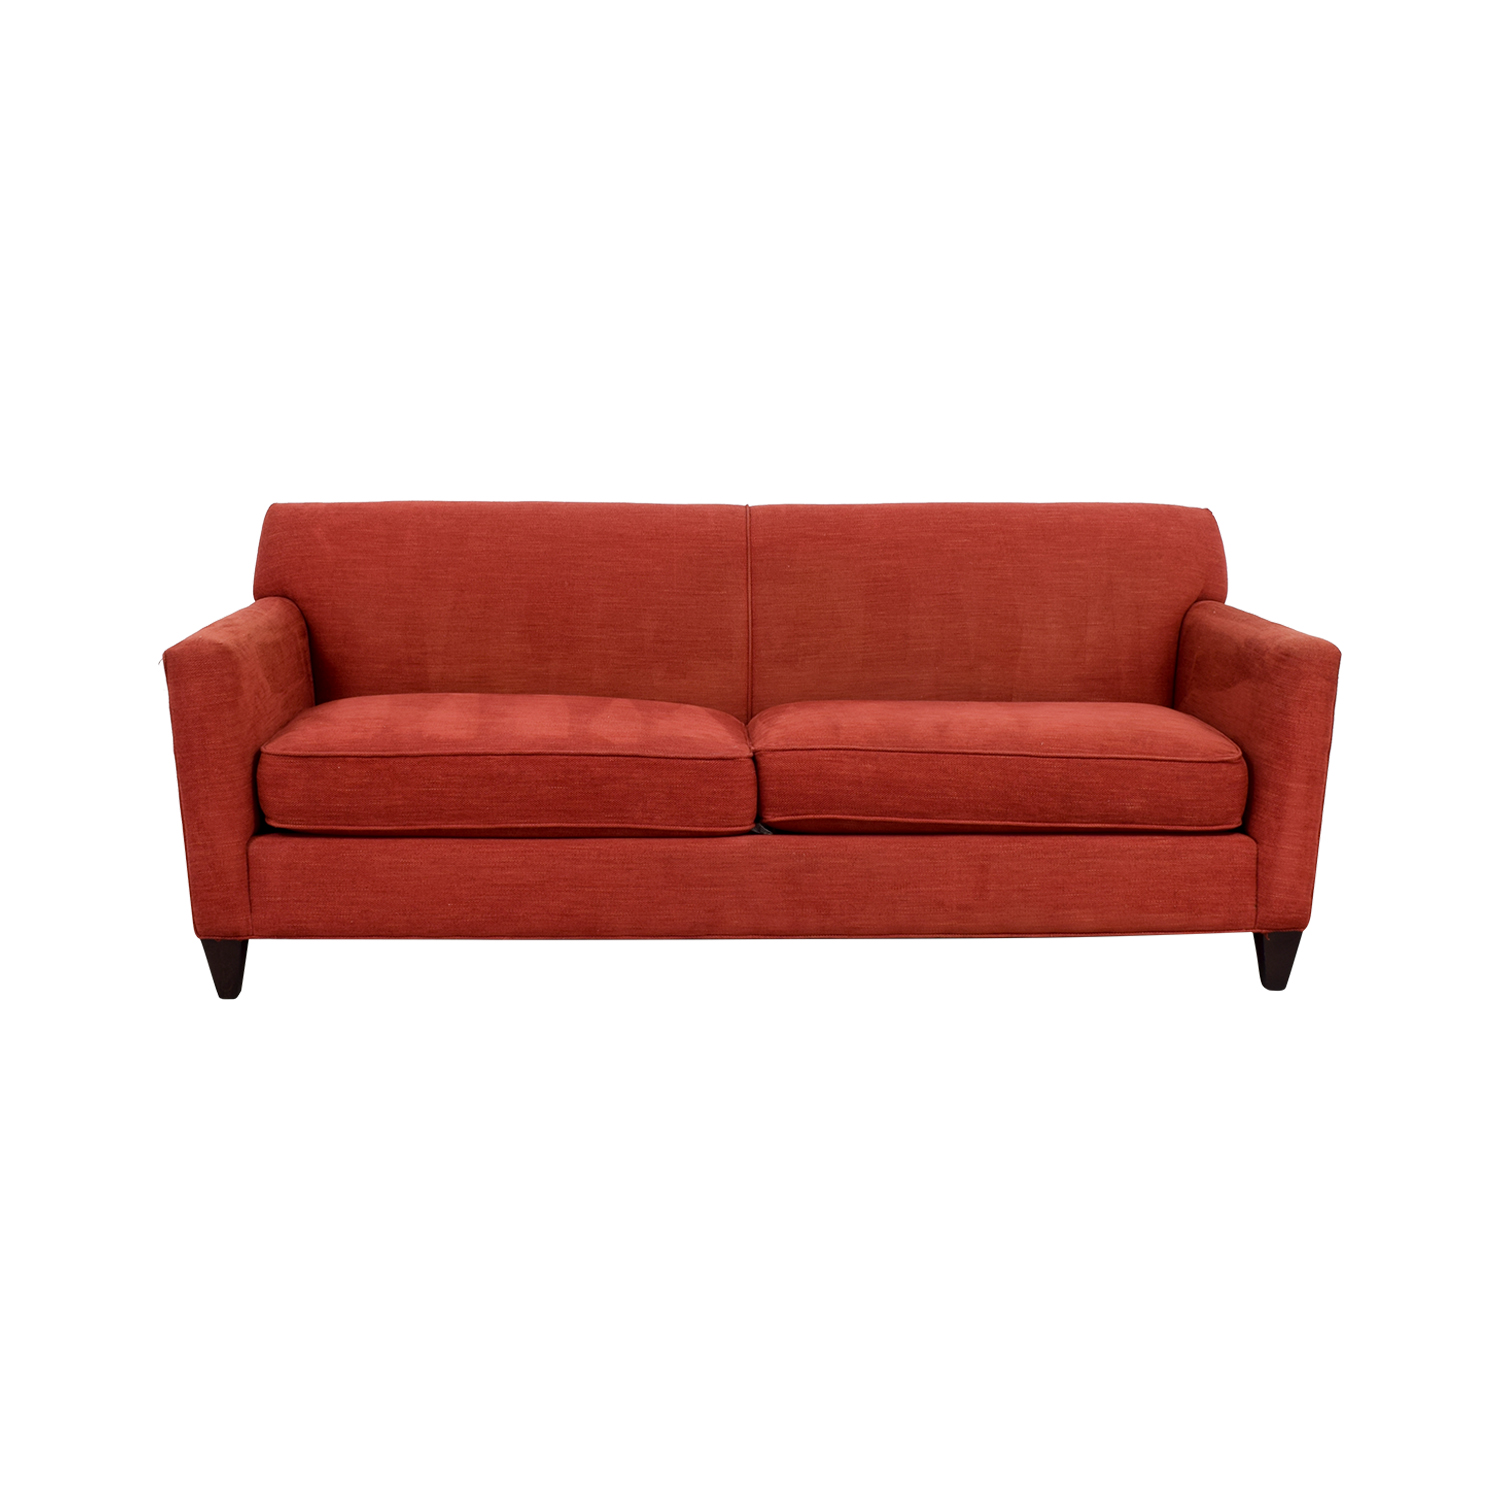 Classic sofas used classic sofas for sale for Classic sofa